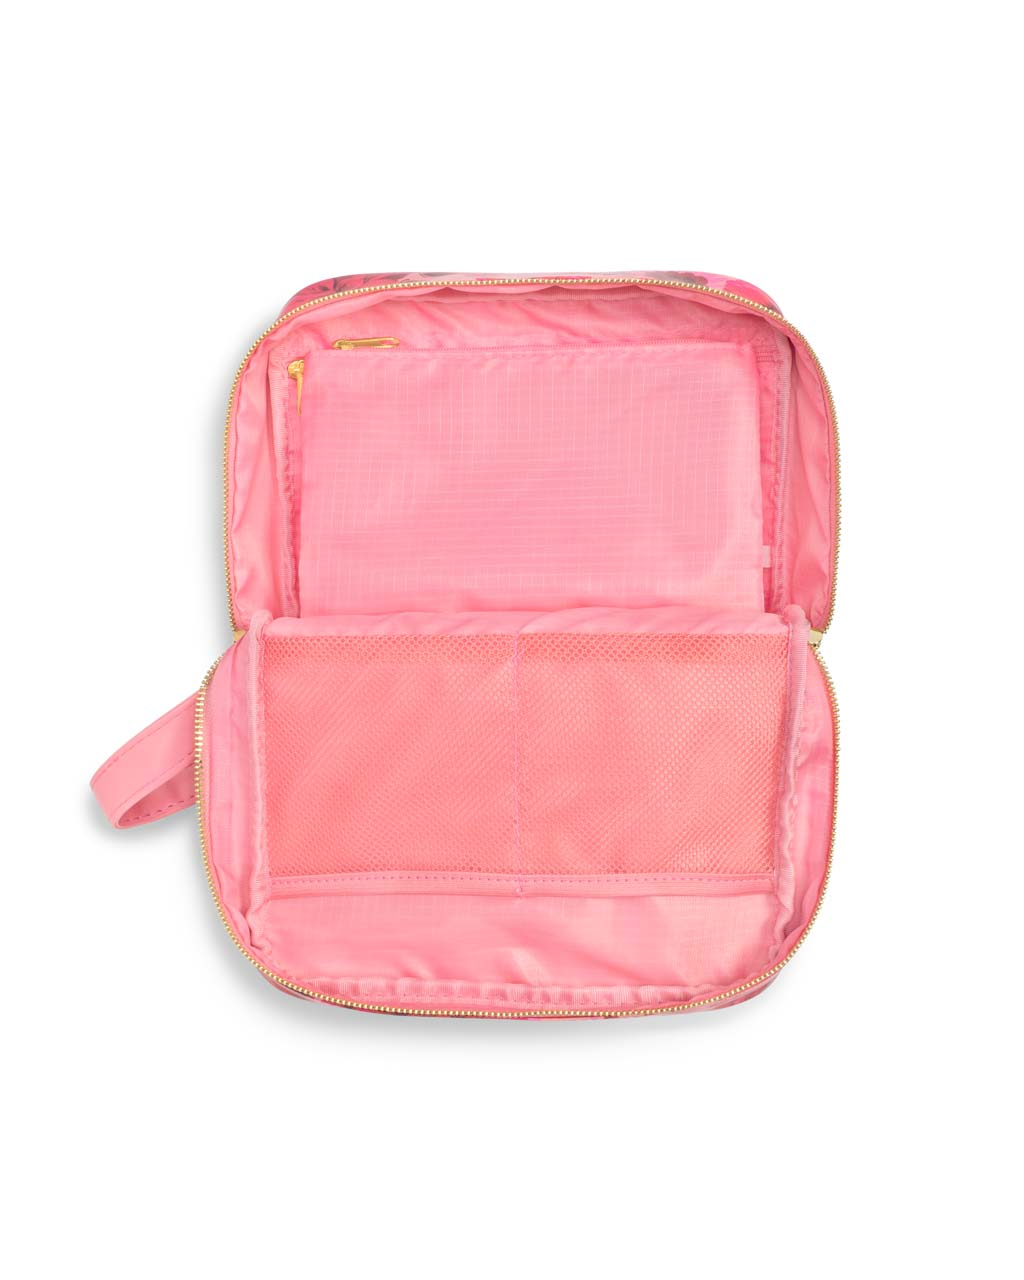 Large pink interior with a wall pocket and center divider in mesh.